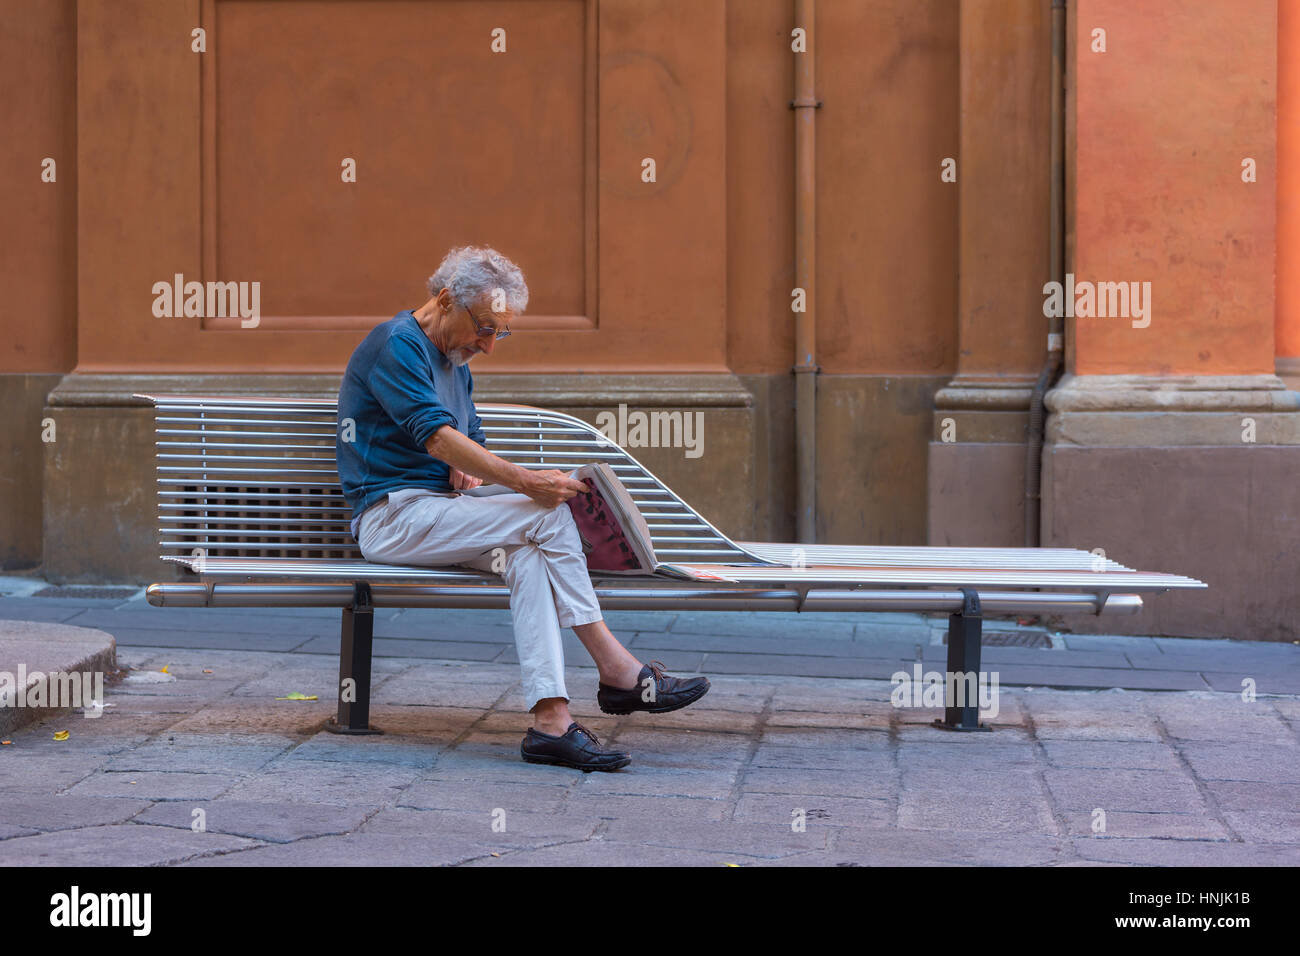 Man sits on a bench and reads newspaper in a tranquil environment of Bologna city. - Stock Image